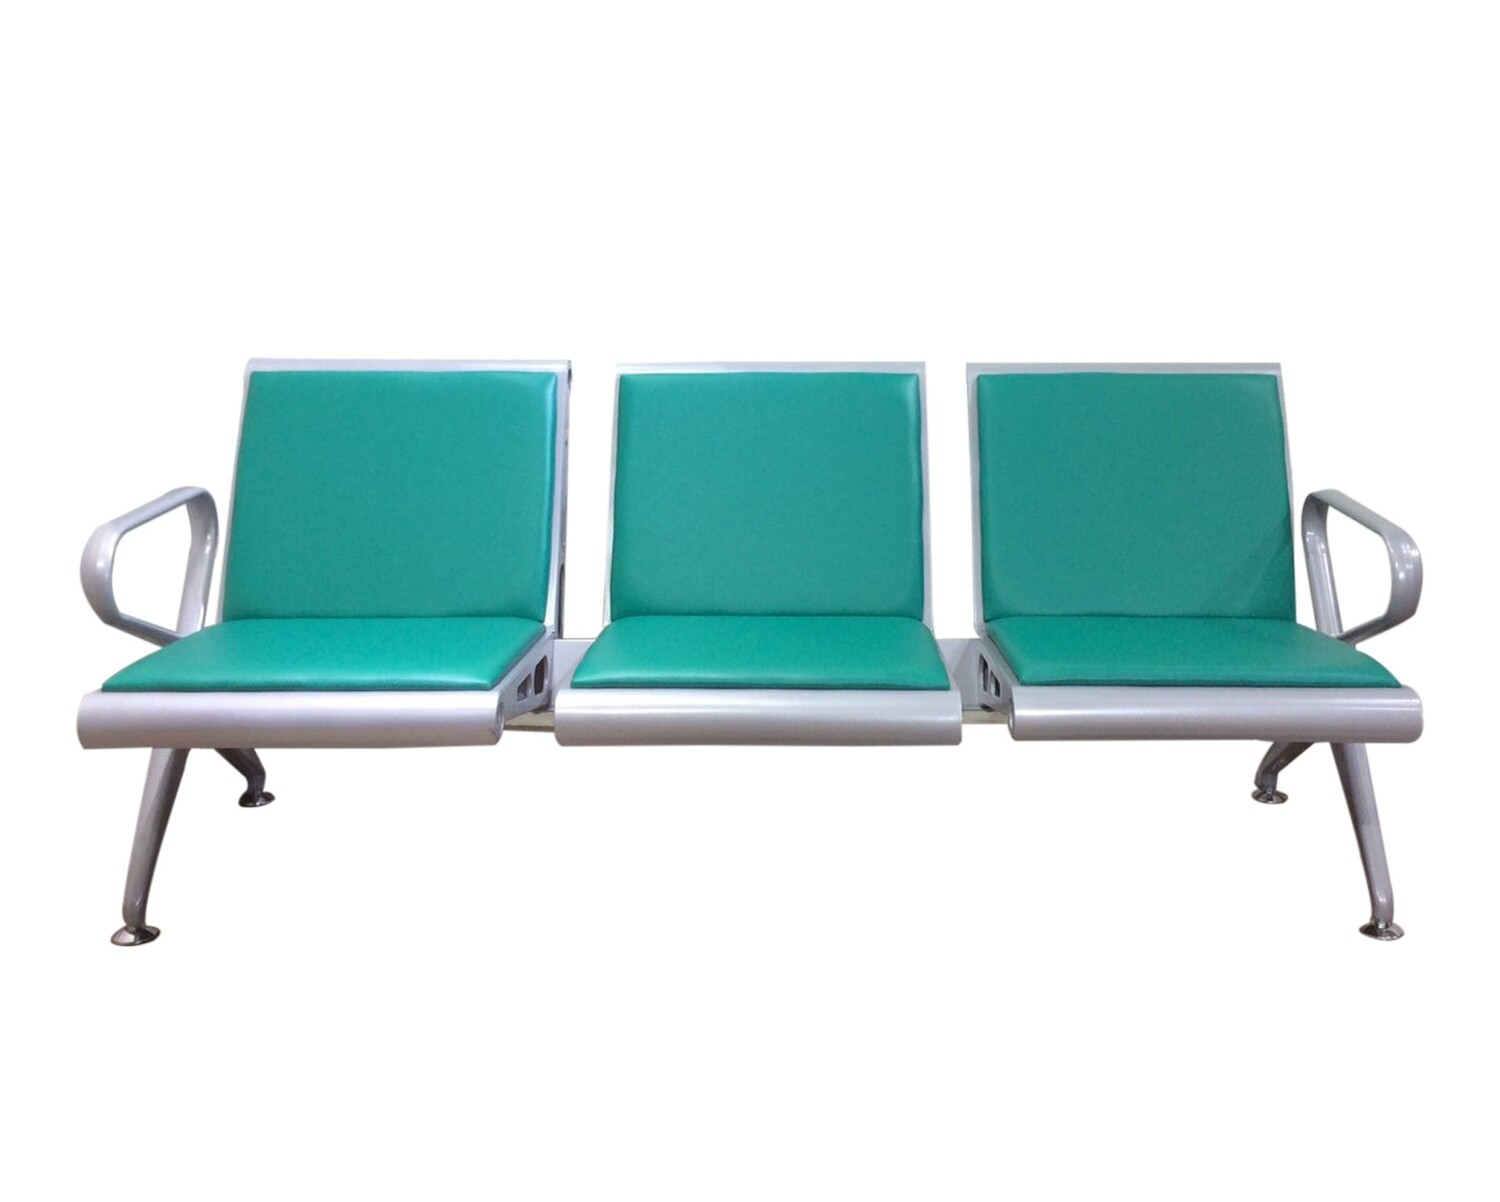 Ofix Airport Gang Waiting Chair With PU (3 Seater/ 4 Seater) (Blue, Green)